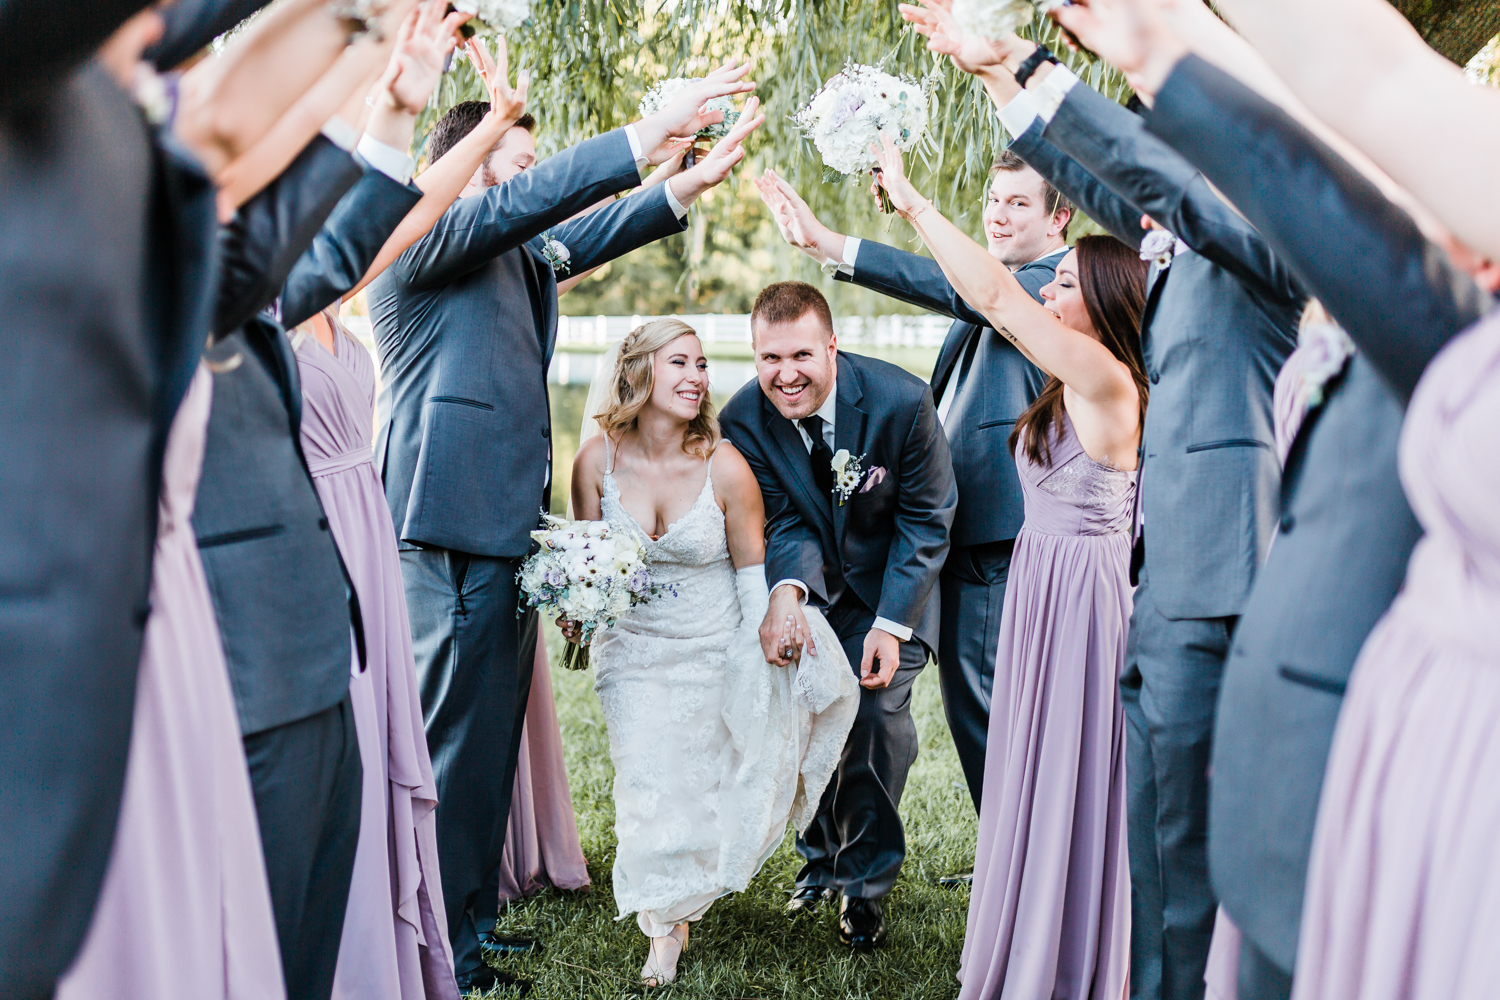 Bride and Groom running with cheering wedding party - Maryland rustic wedding